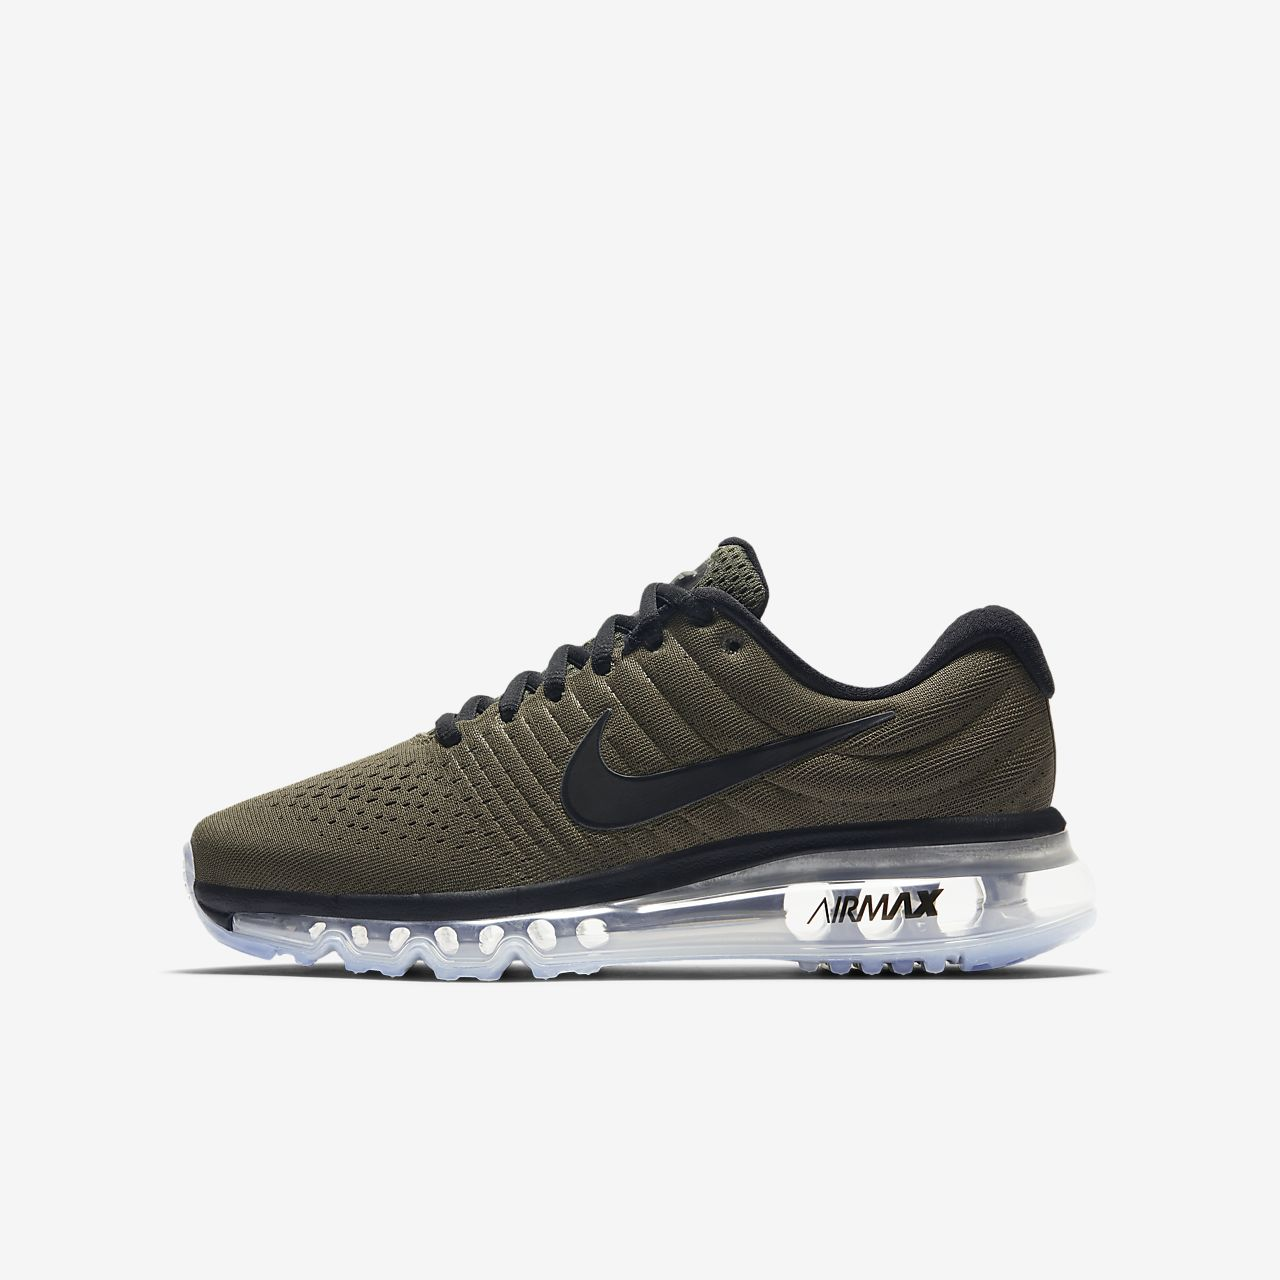 2017 nike air max all black nz